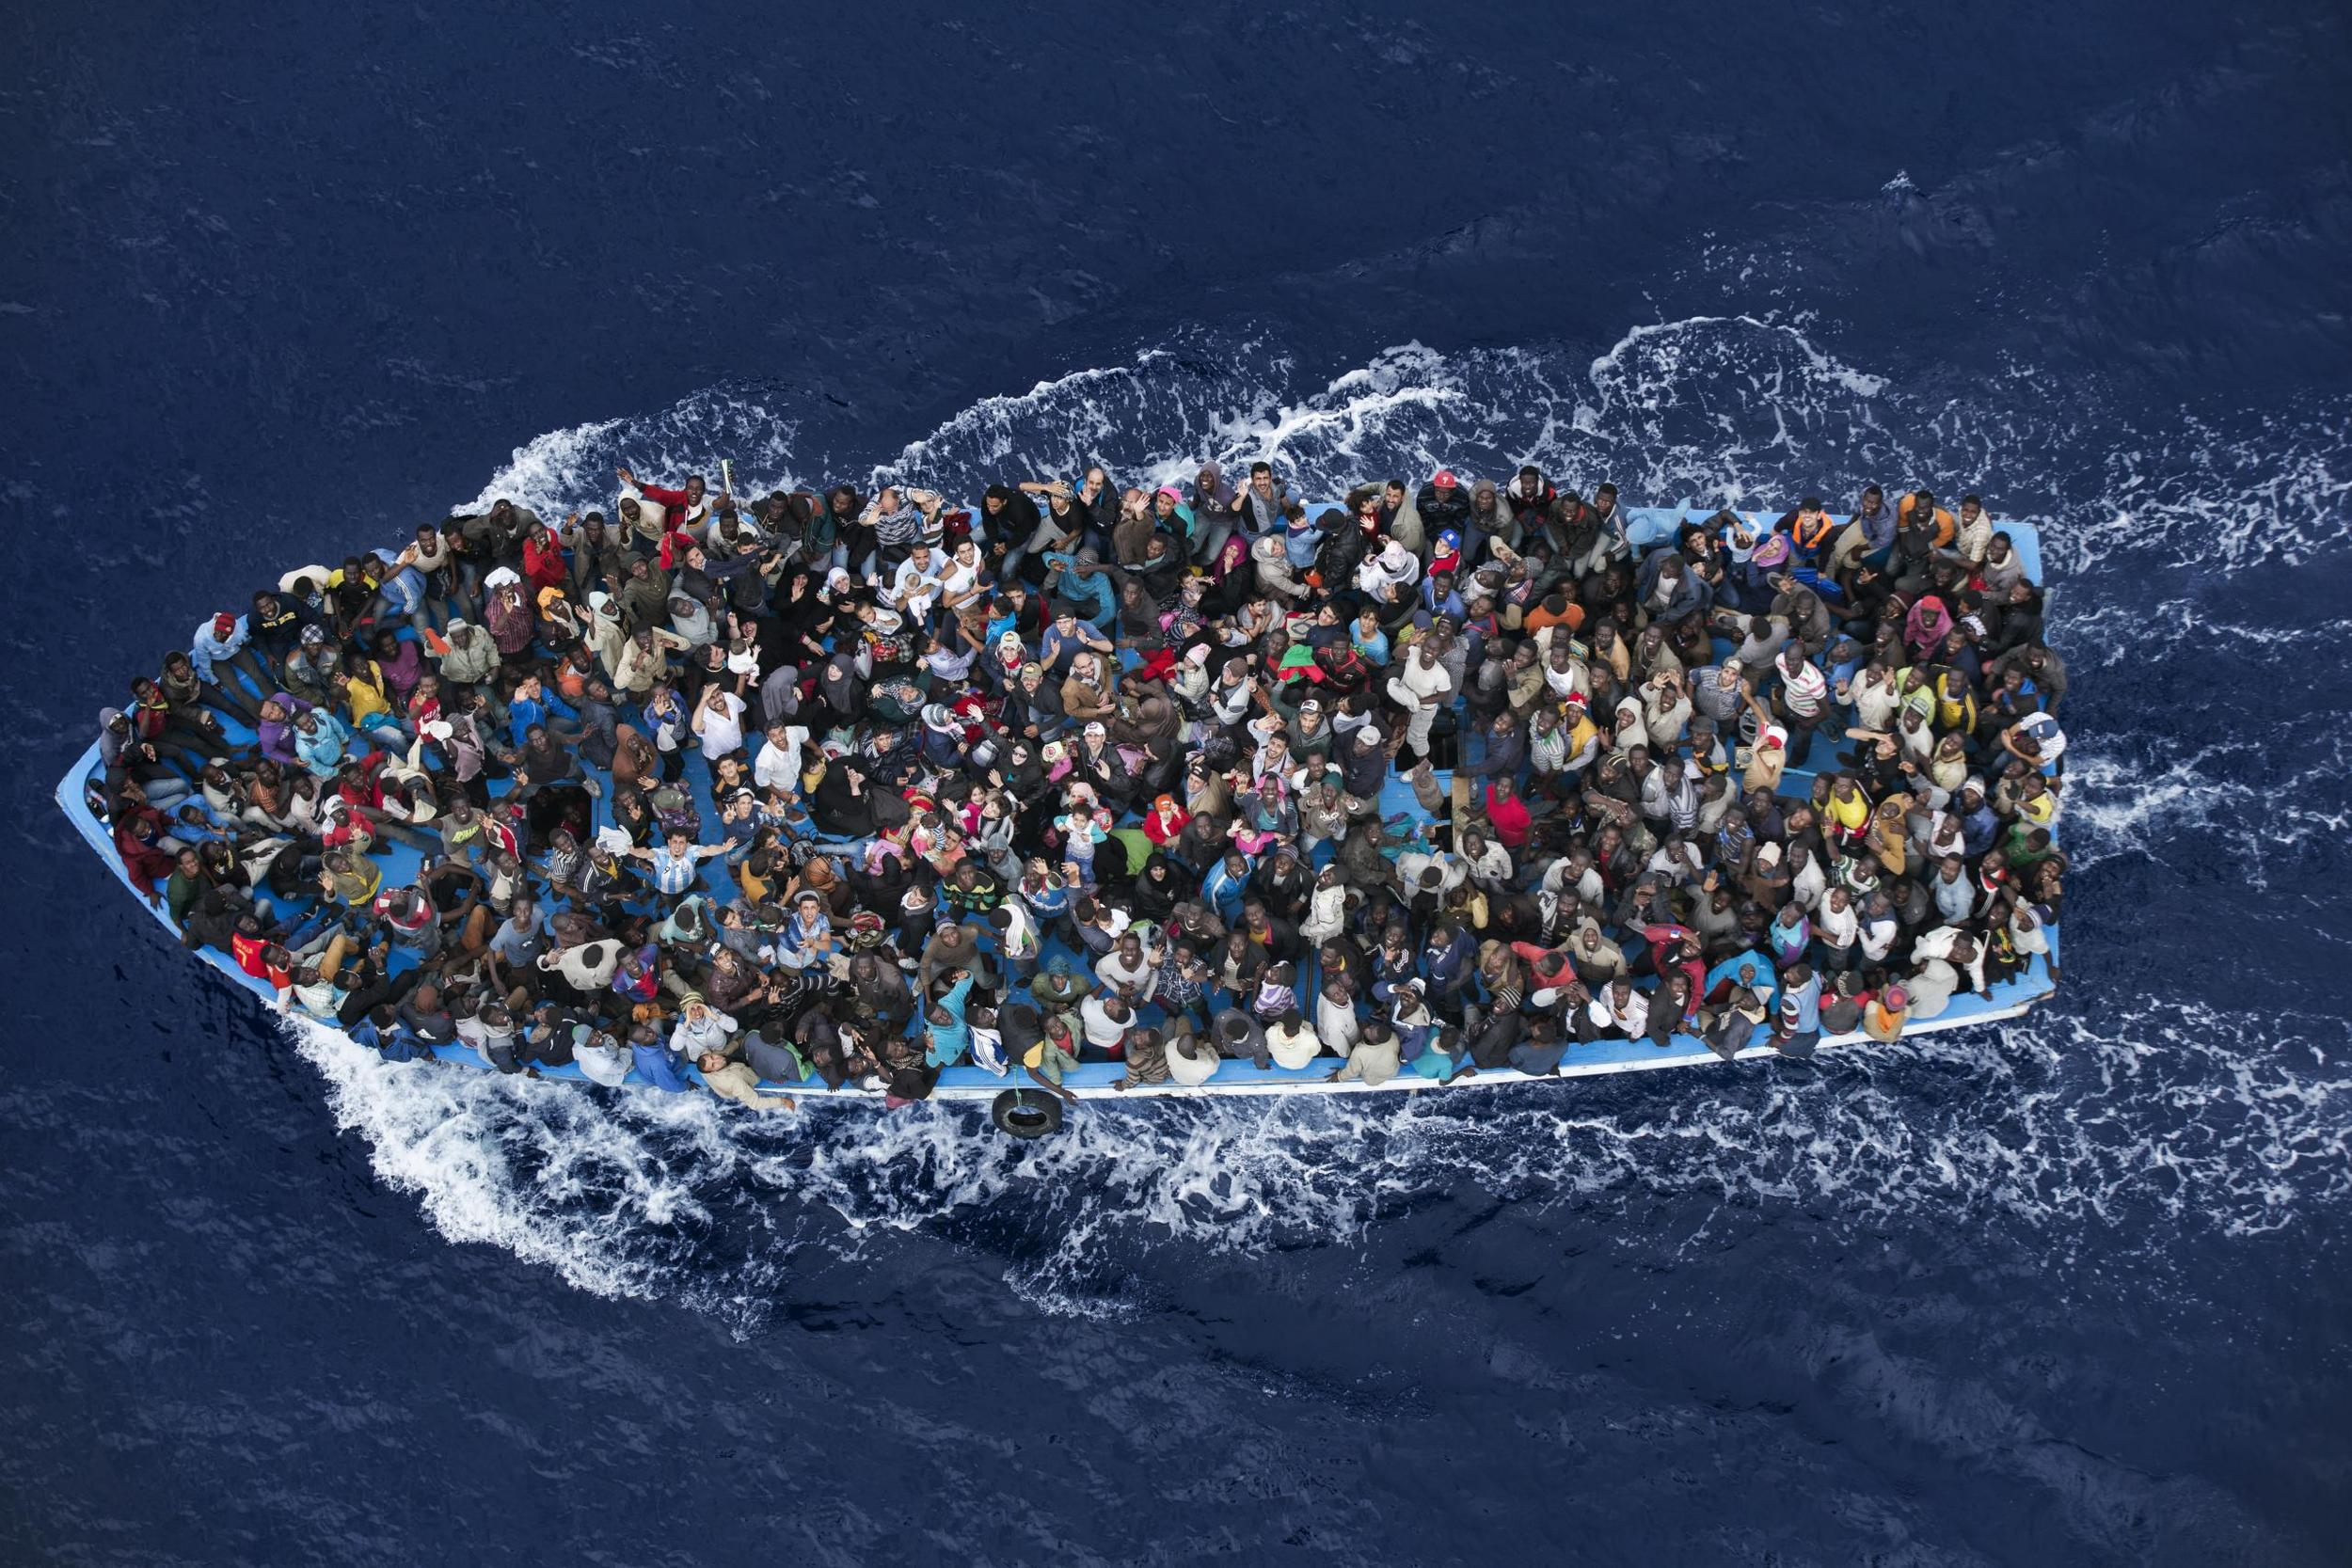 Asylum seekers from Africa traveling by boat in the Mediterrancean, 2014. Photo by Massimo Sestini